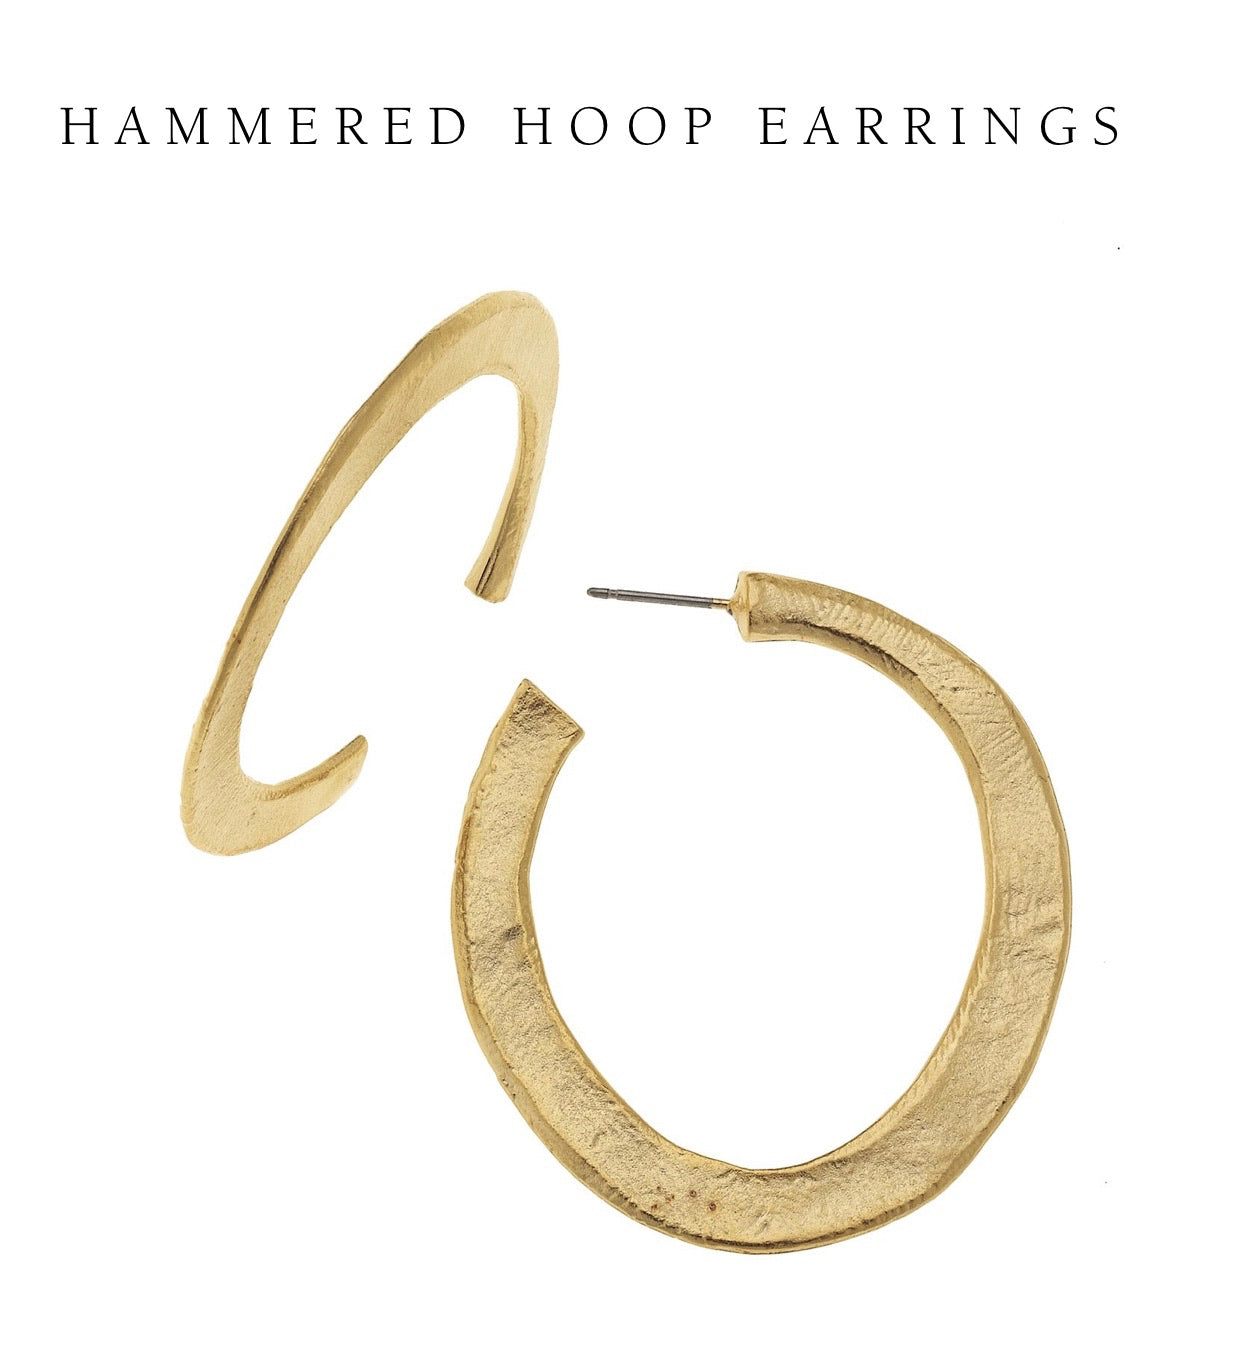 Susan Shaw 24kt Gold Hand Cast Sterling Silver Plating Hammered Hoop Lightweight Earrings